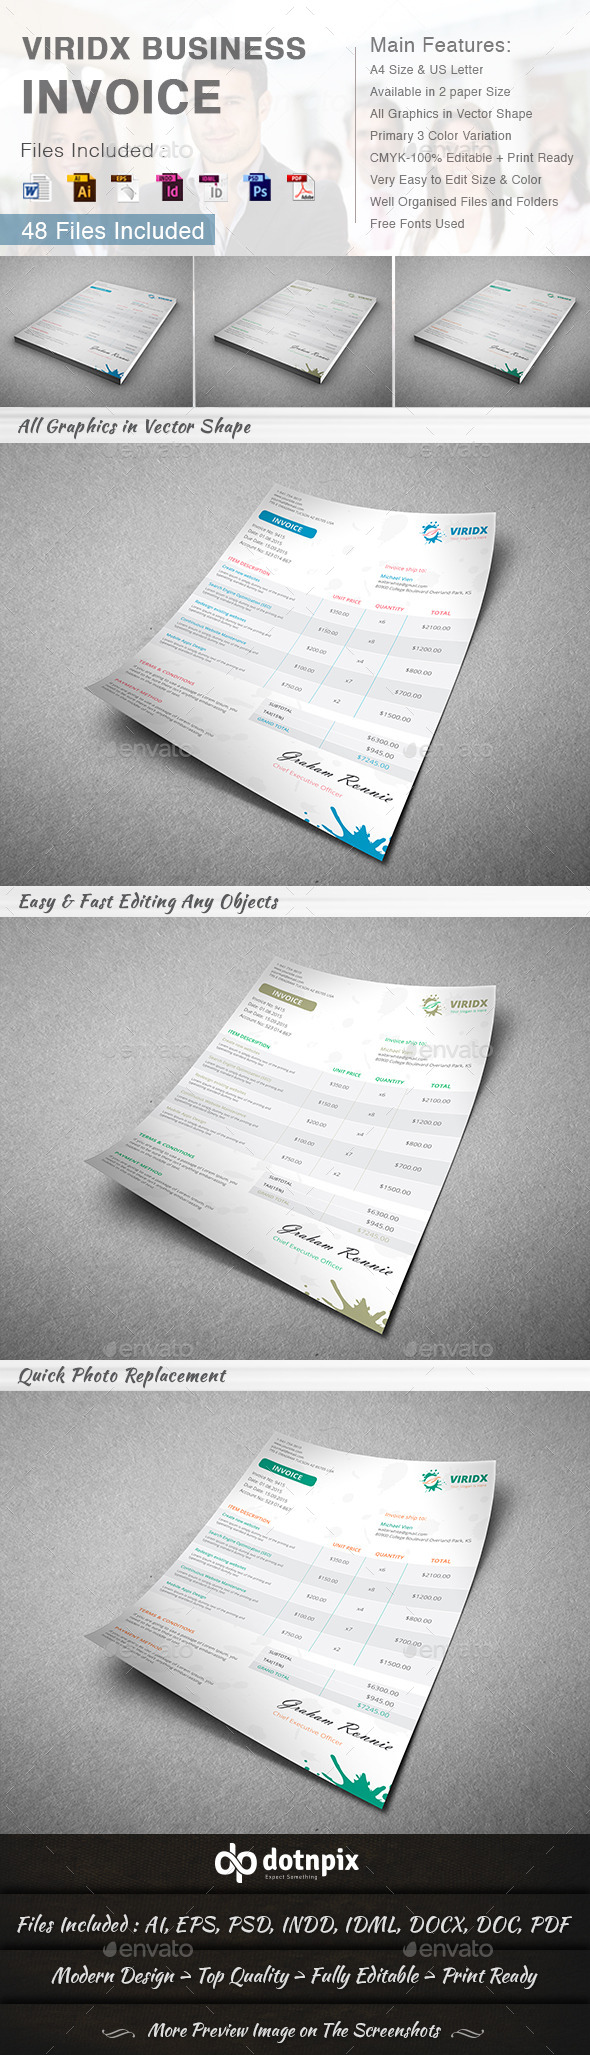 GraphicRiver Viridx Business Invoice 10282426